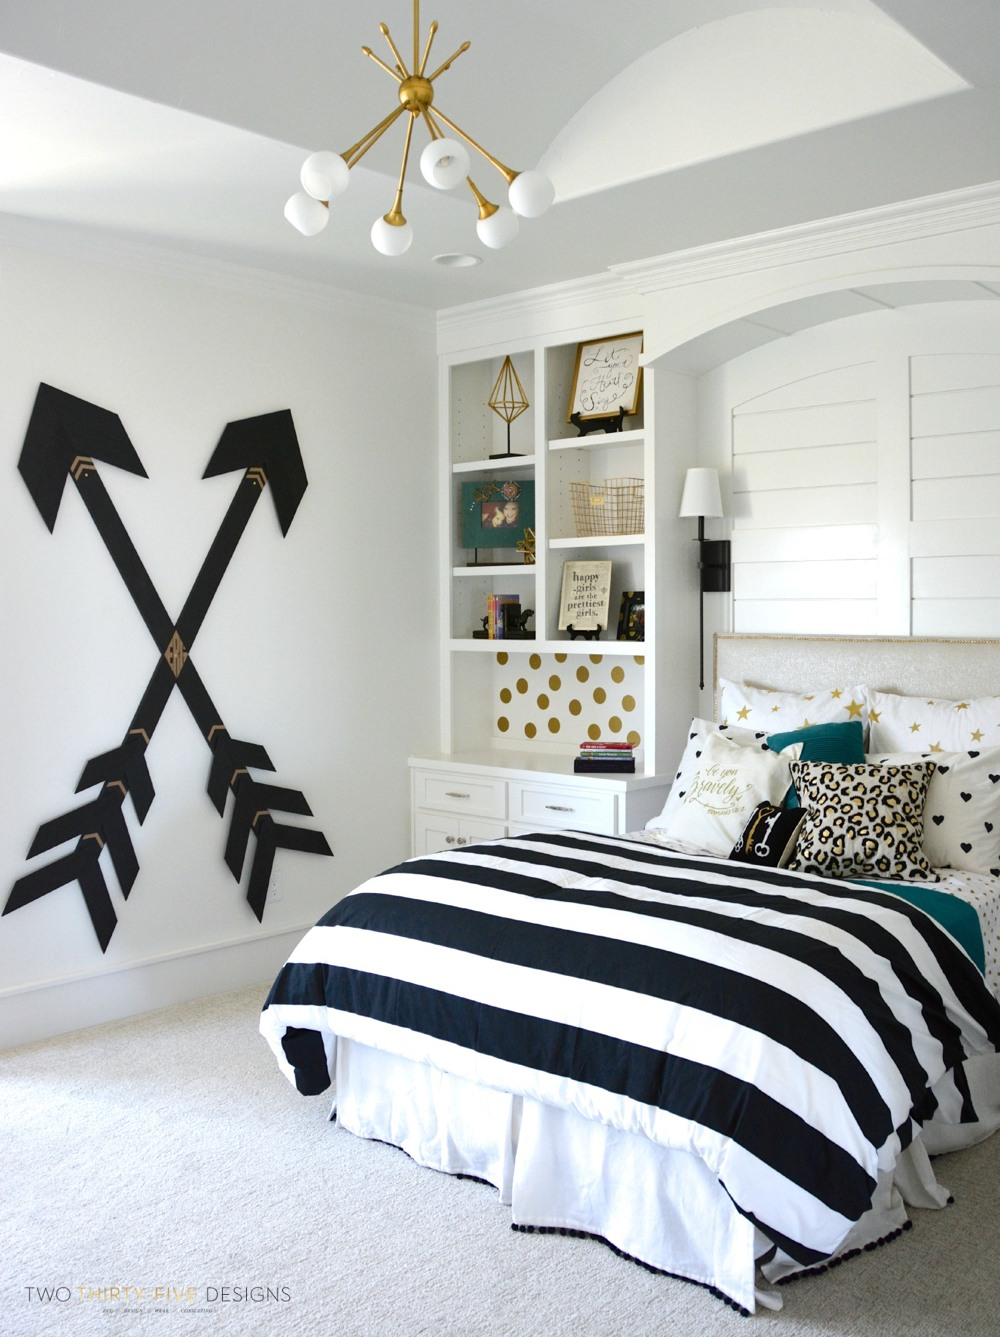 23 Stylish Teen Girl\'s Bedroom Ideas | Homelovr